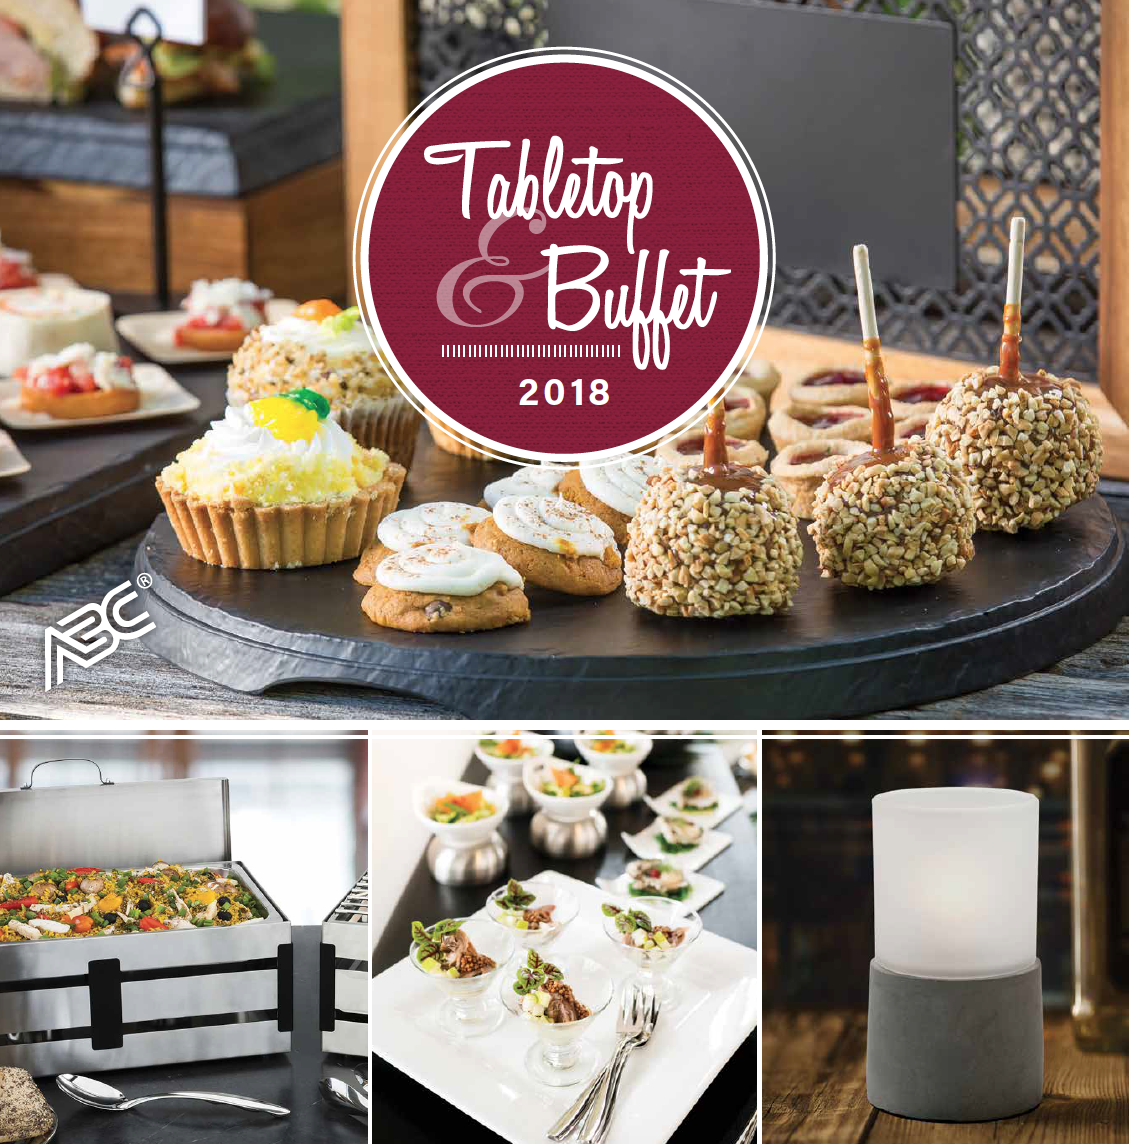 ABC Tabletop & Buffet 2018